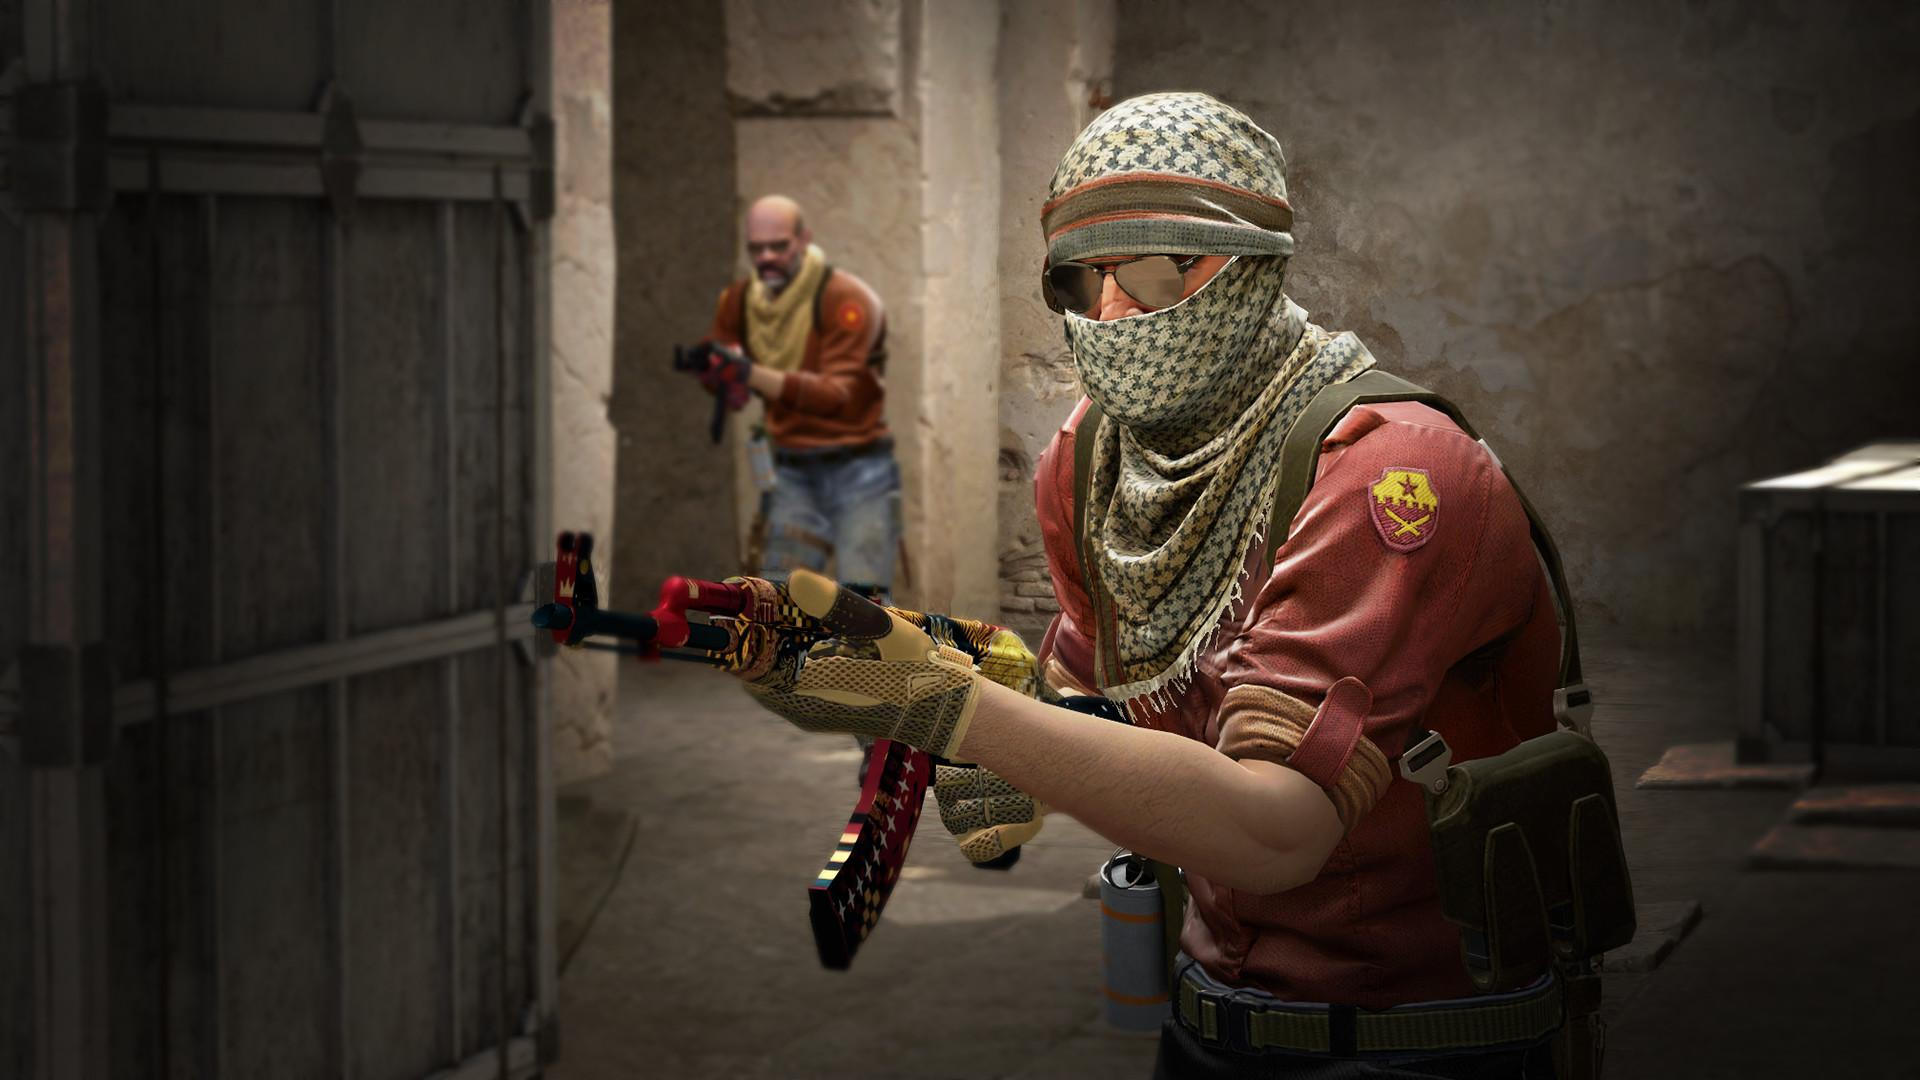 CS:GO's competitive scene remains one of the biggest ones in modern gaming